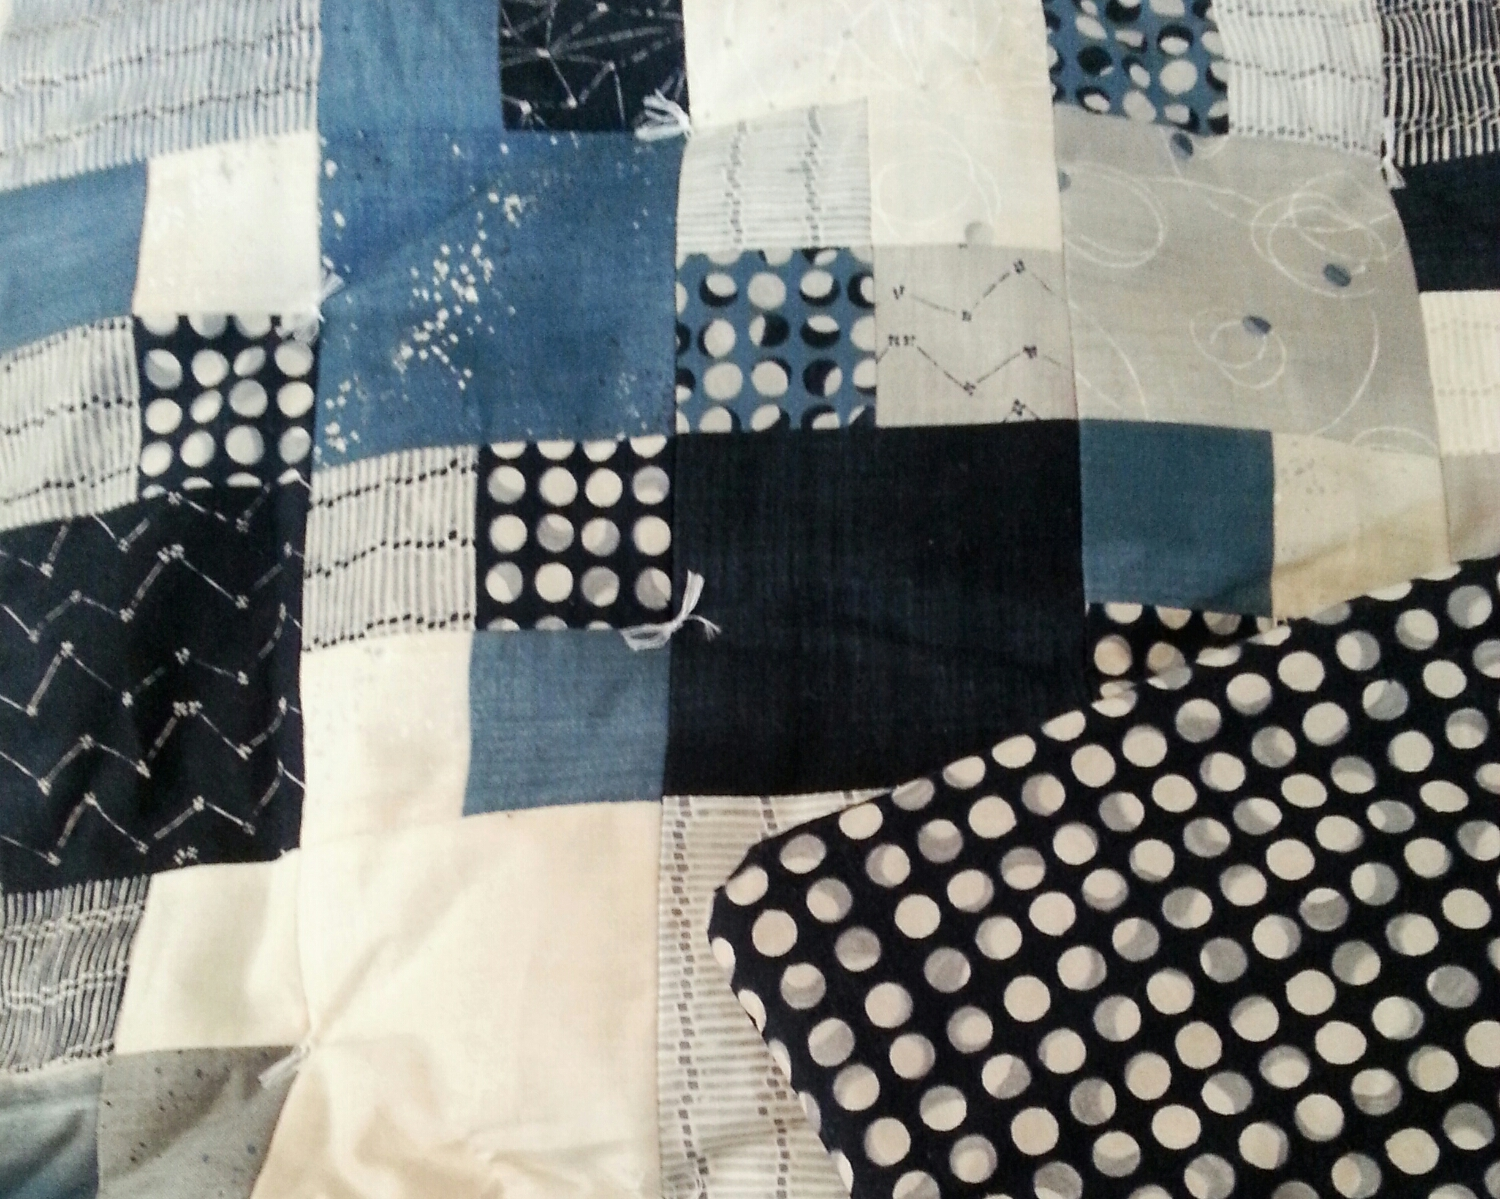 The pattern is super simple, it's a checker board of single square and 4-square blocks.